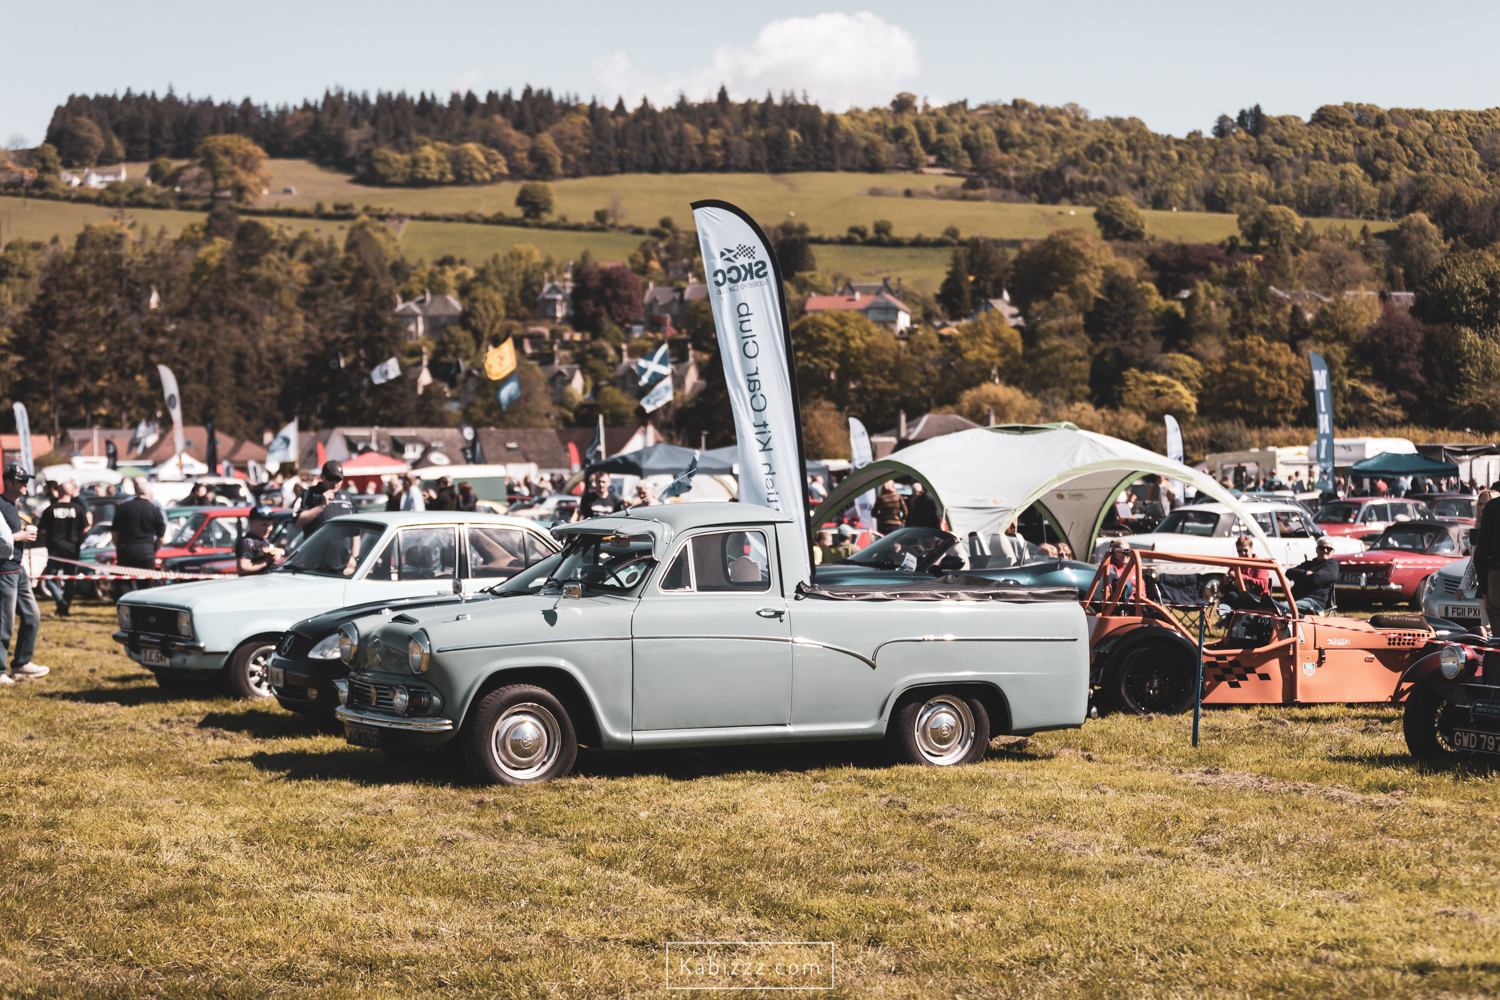 Kabizzz_Photography_Stirling_District_Classic _cars-19.jpg